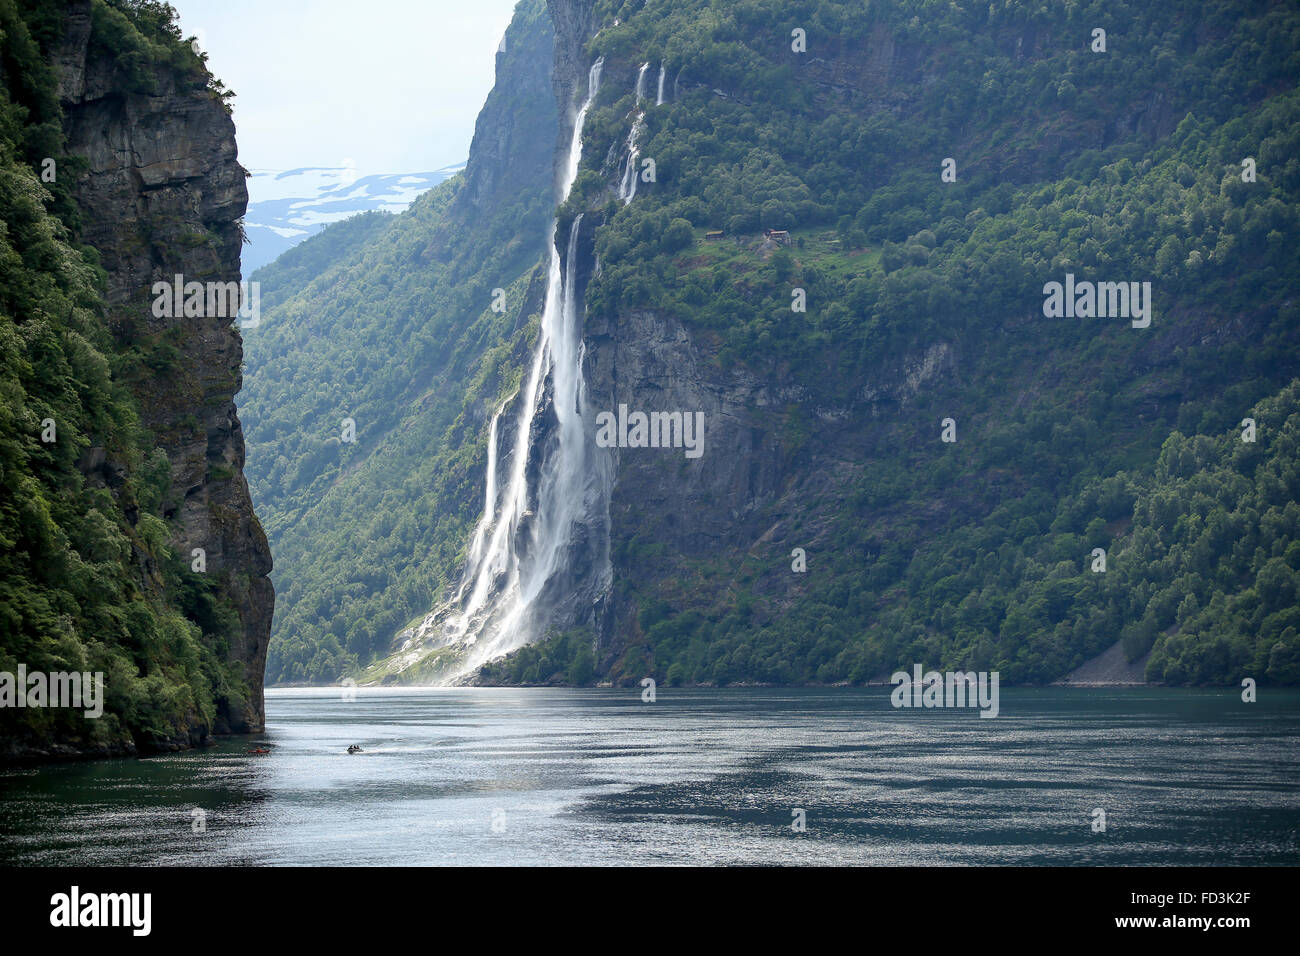 Norway, Geiranger Fjord, cascading waterfalls. - Stock Image